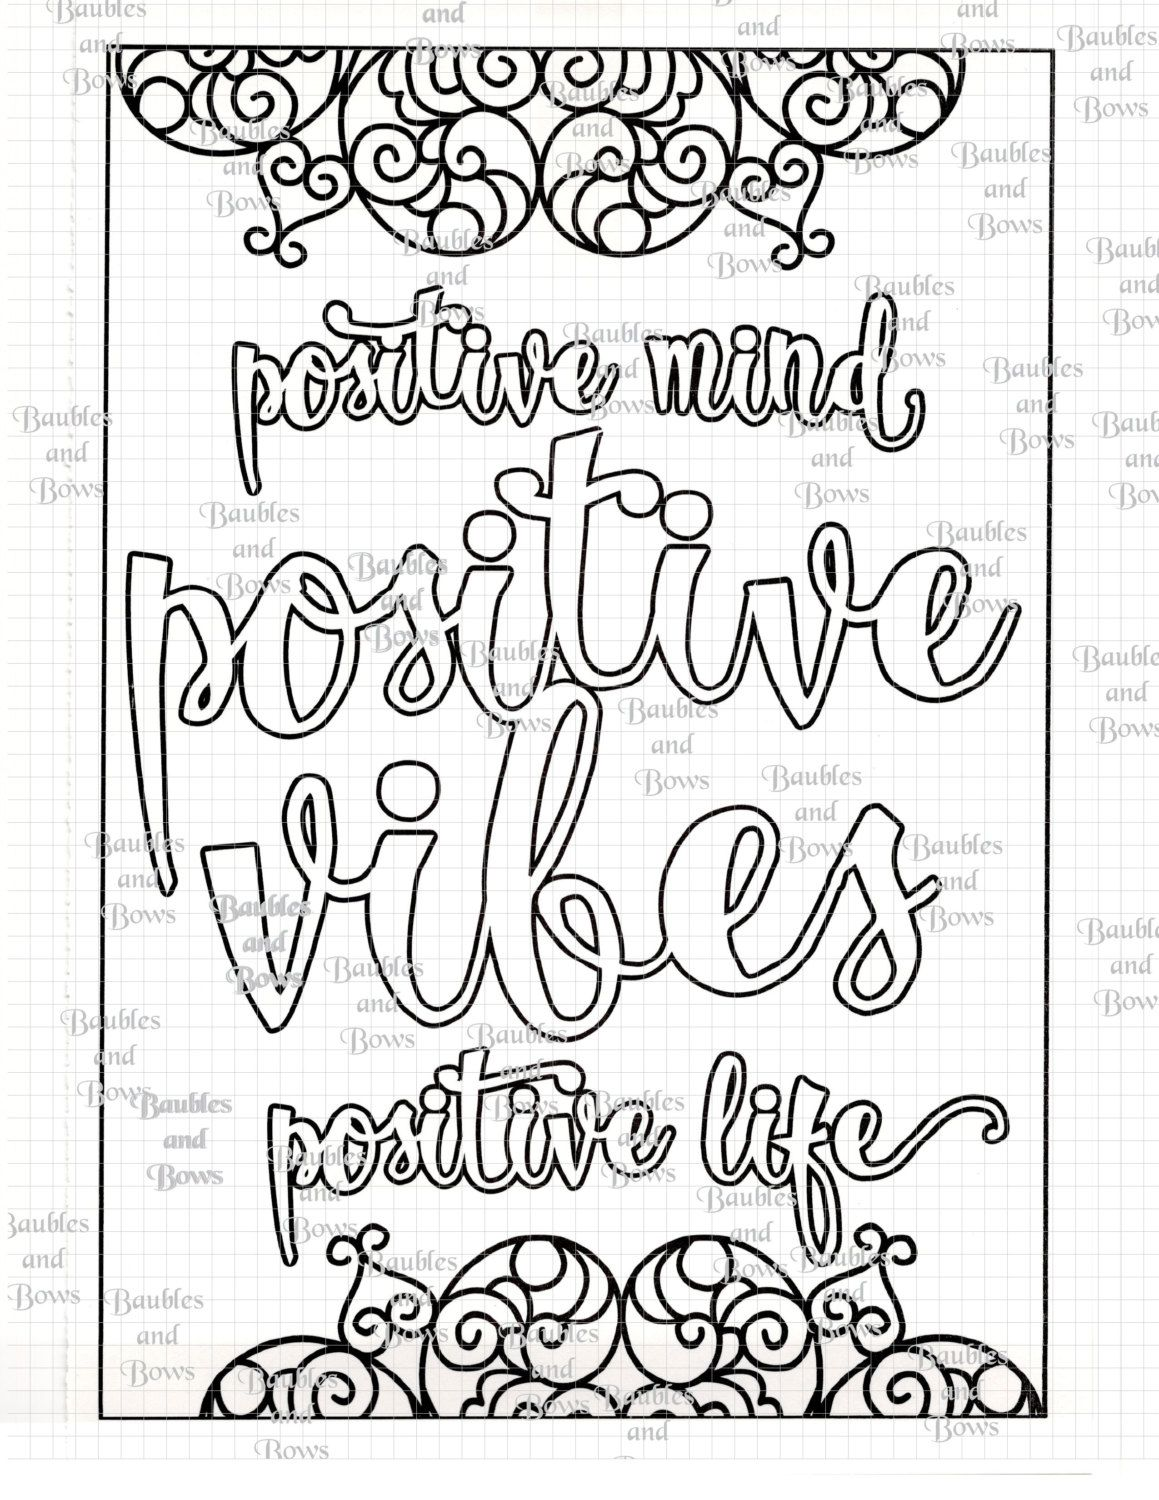 Mandala coloring pages with quotes - Positive Printable Adult Mandala Coloring Page Digital By Sewlacee